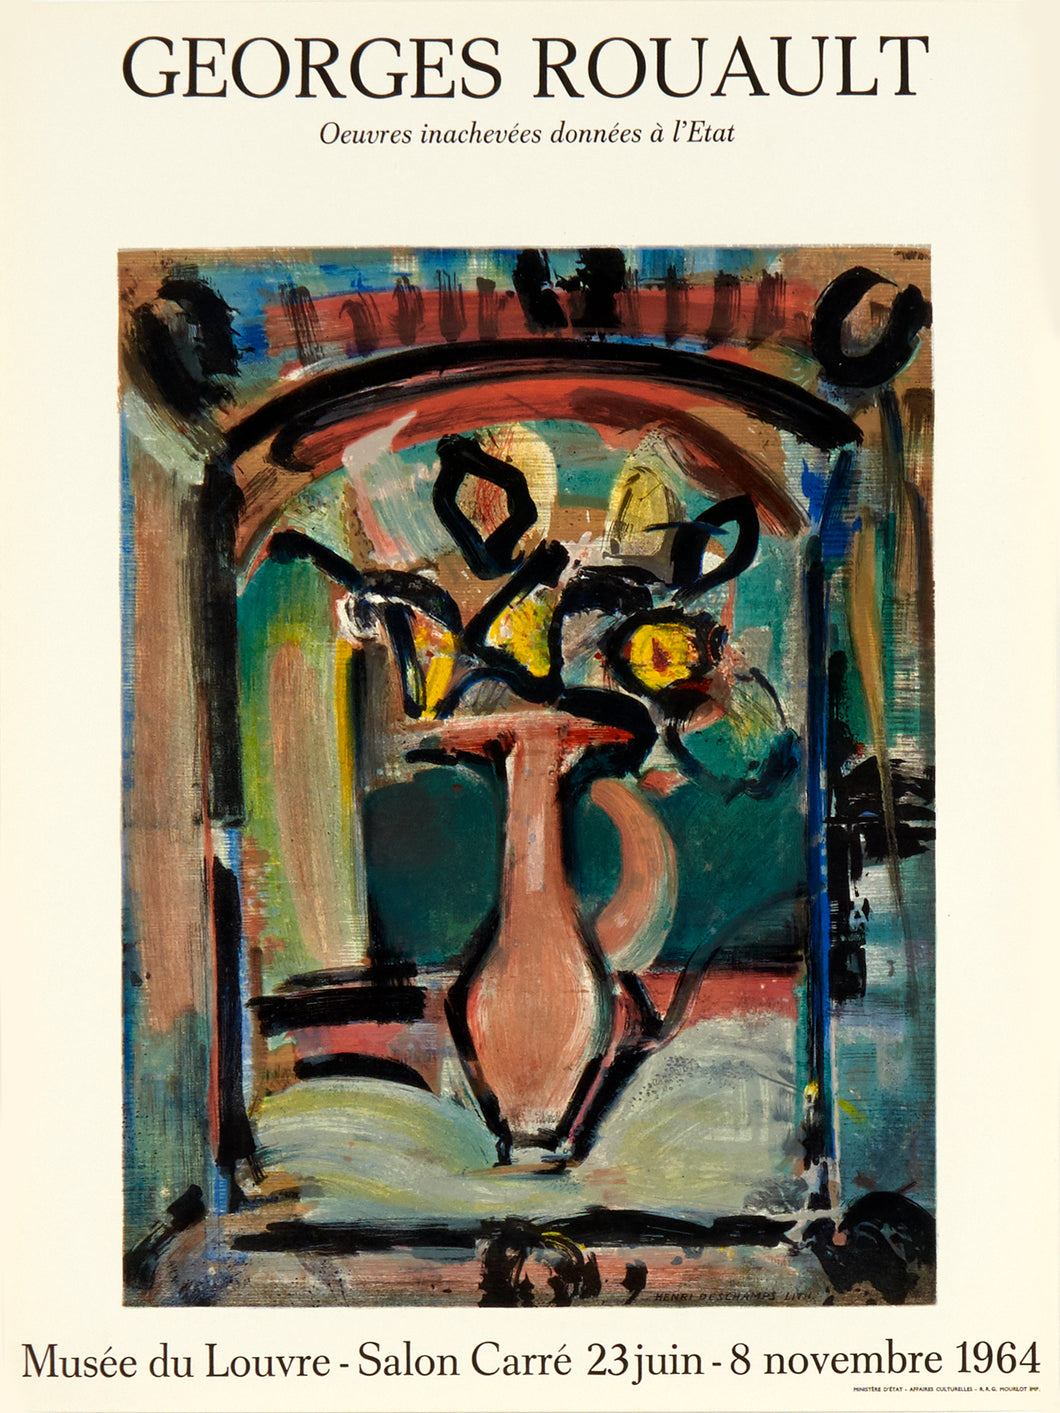 Musee du Louvre by Georges Rouault 1964